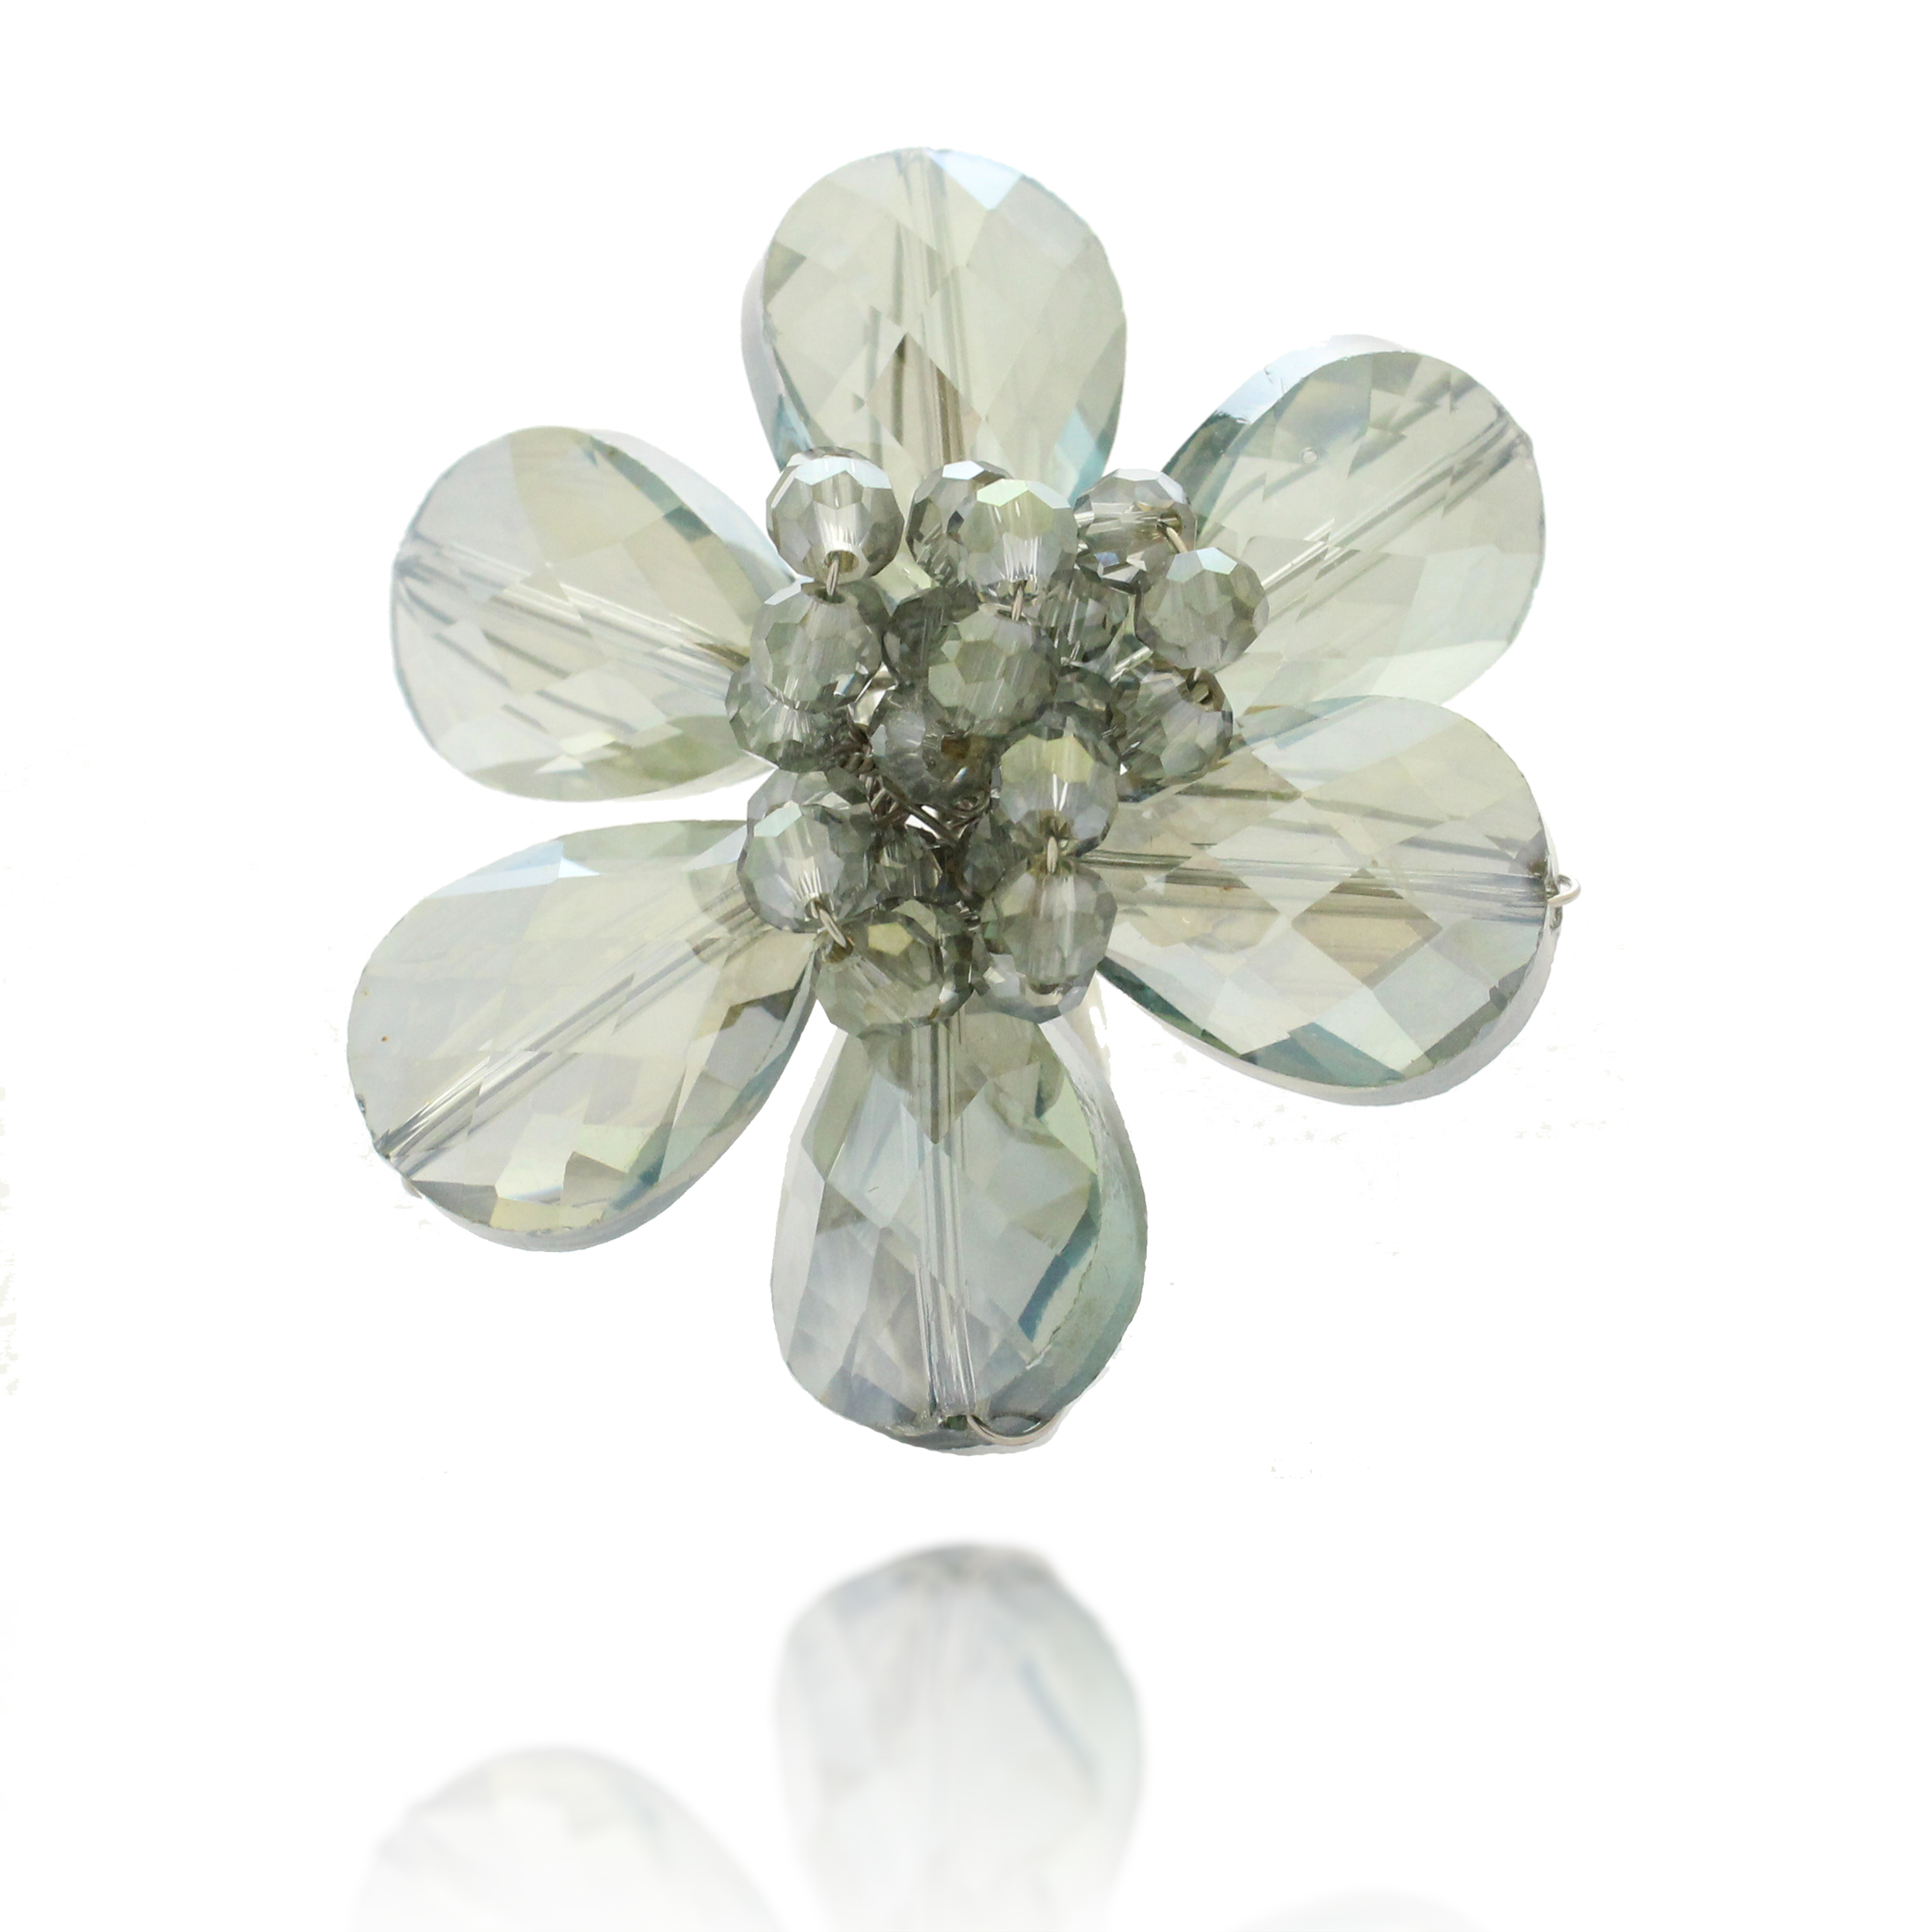 Zinc Handwired Faceted Gray Crystal Glass Beads Flower Adjustable Ring